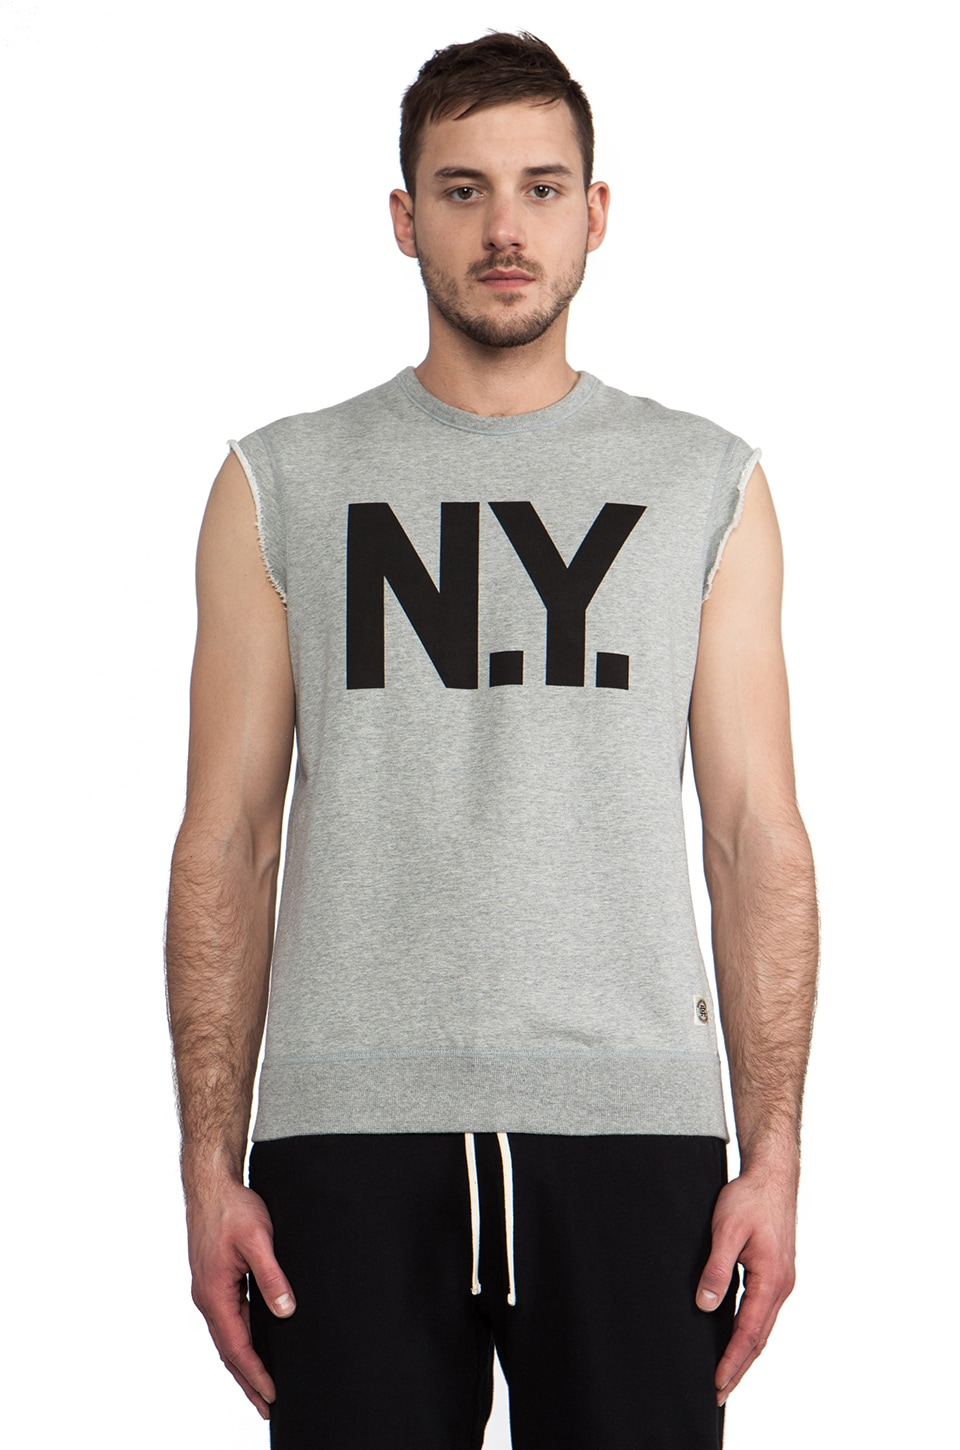 Reigning Champ x Everlast Sporting Goods Sleeveless Crewneck in Heather Grey